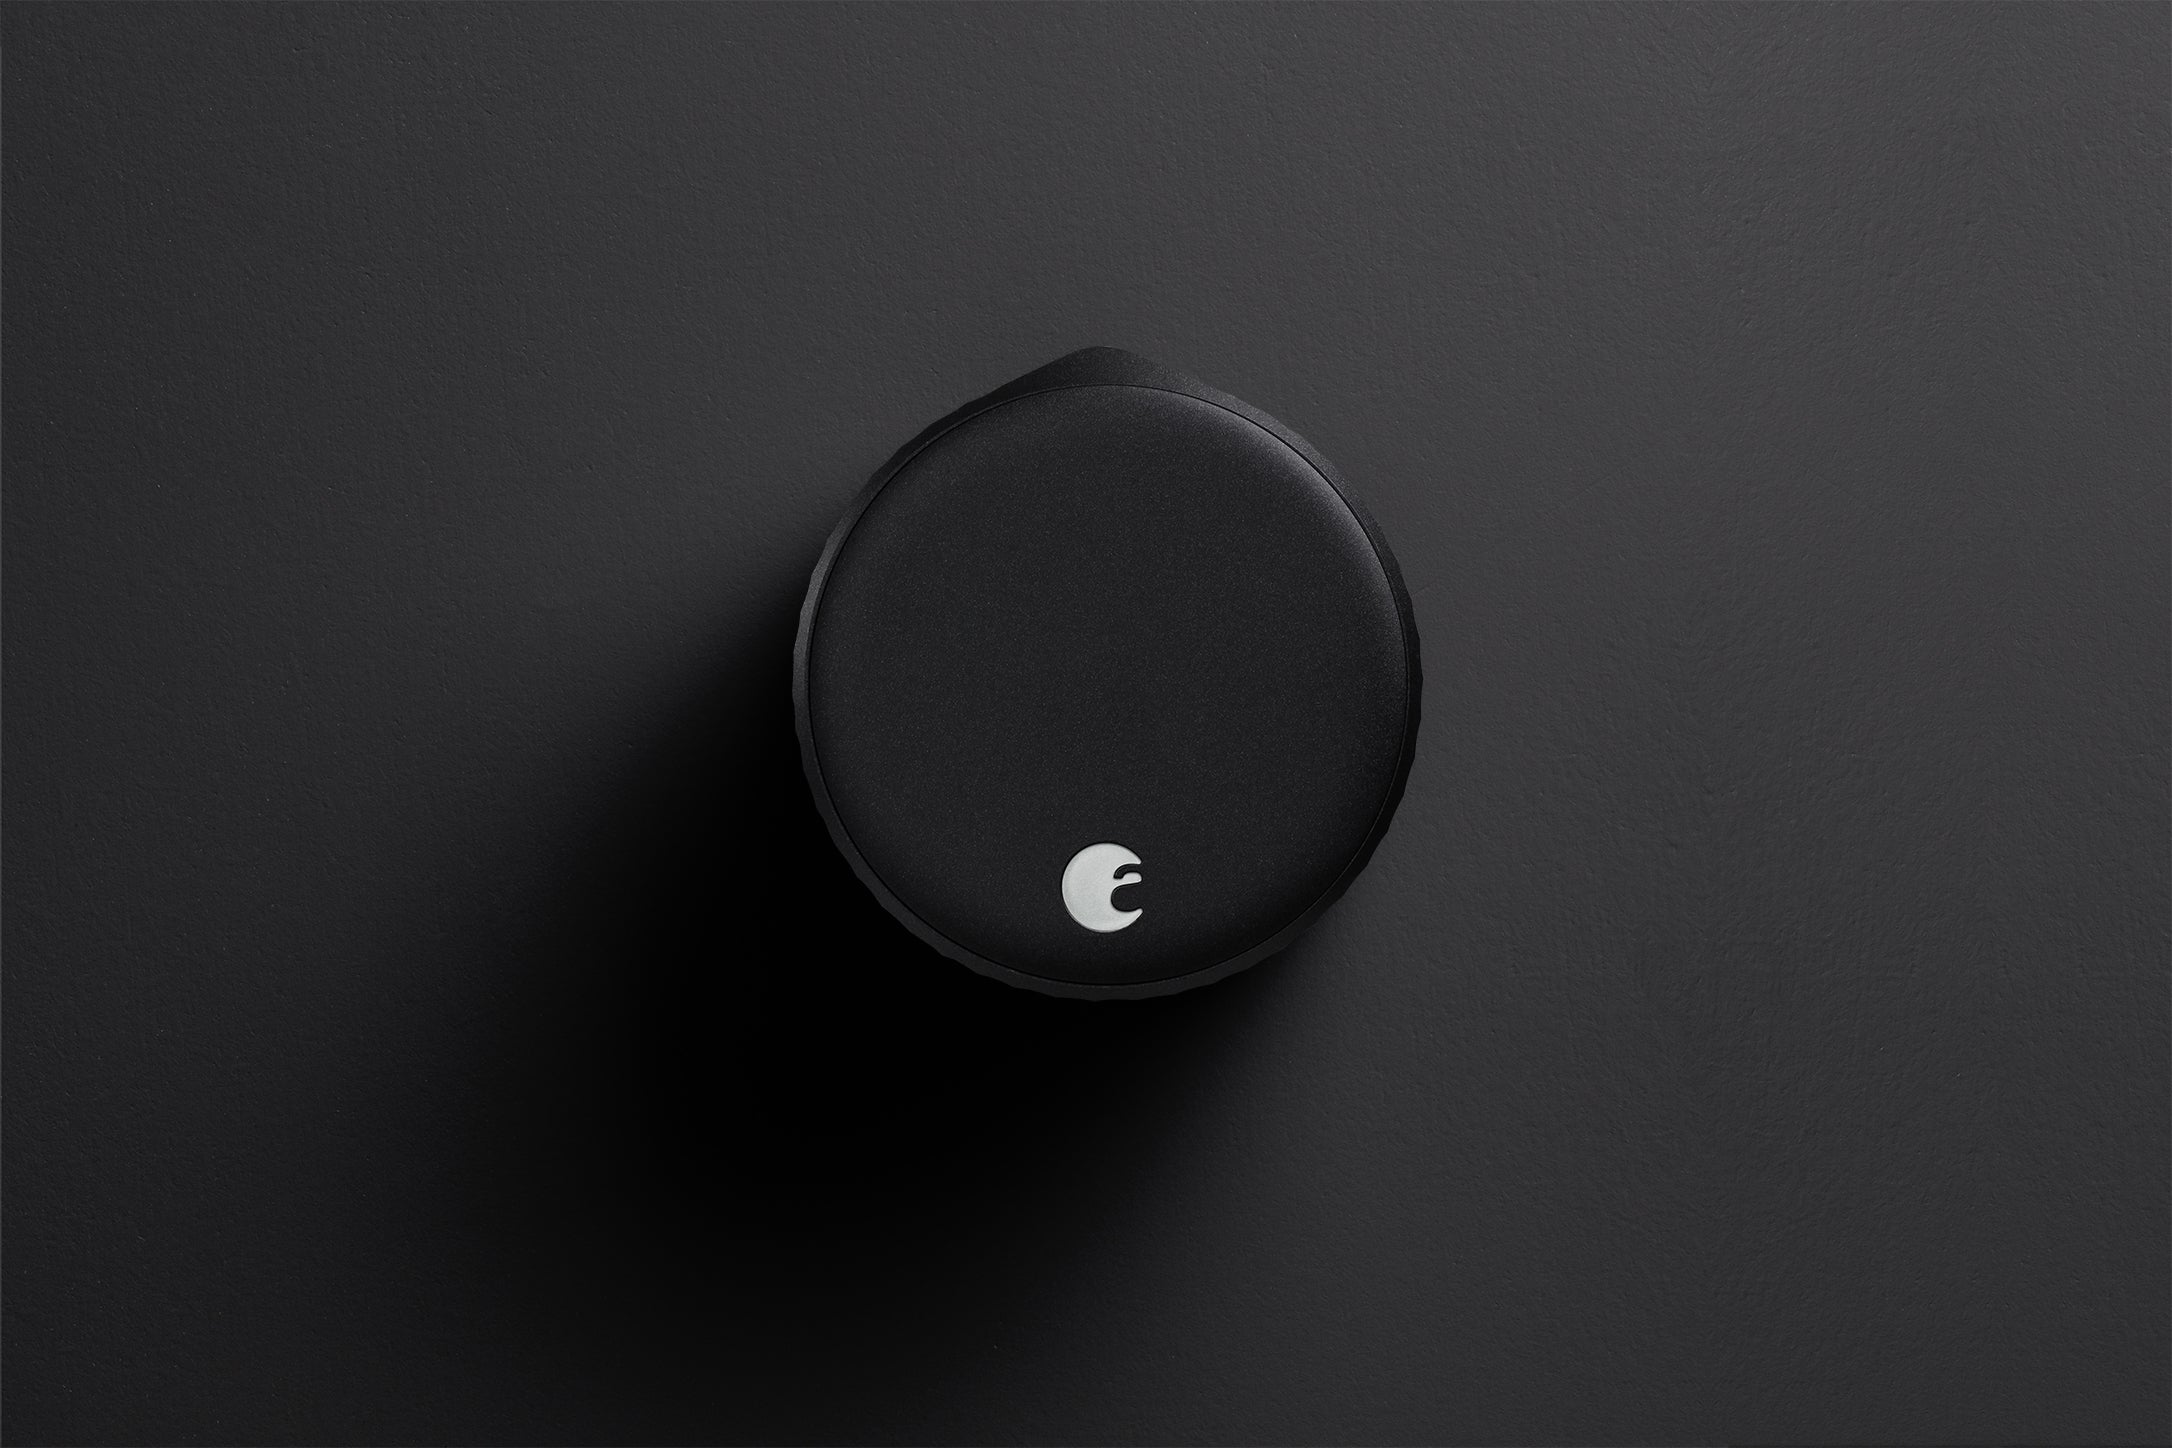 August WiFi Smart Lock Overview